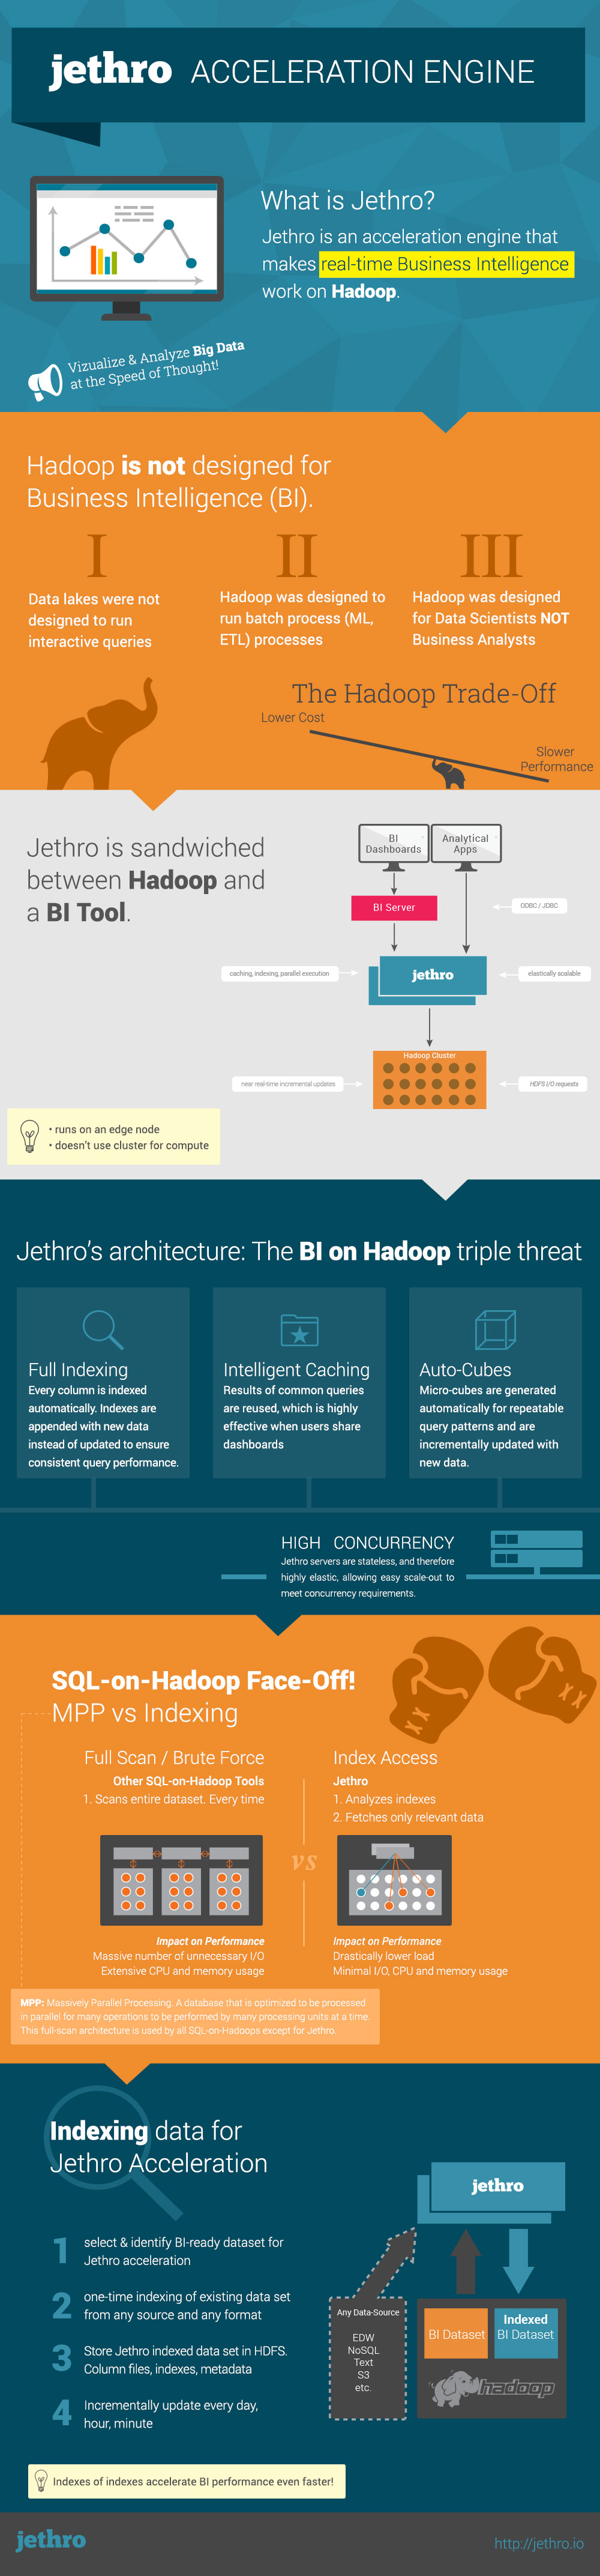 Business Intelligence on Hadoop Infographic